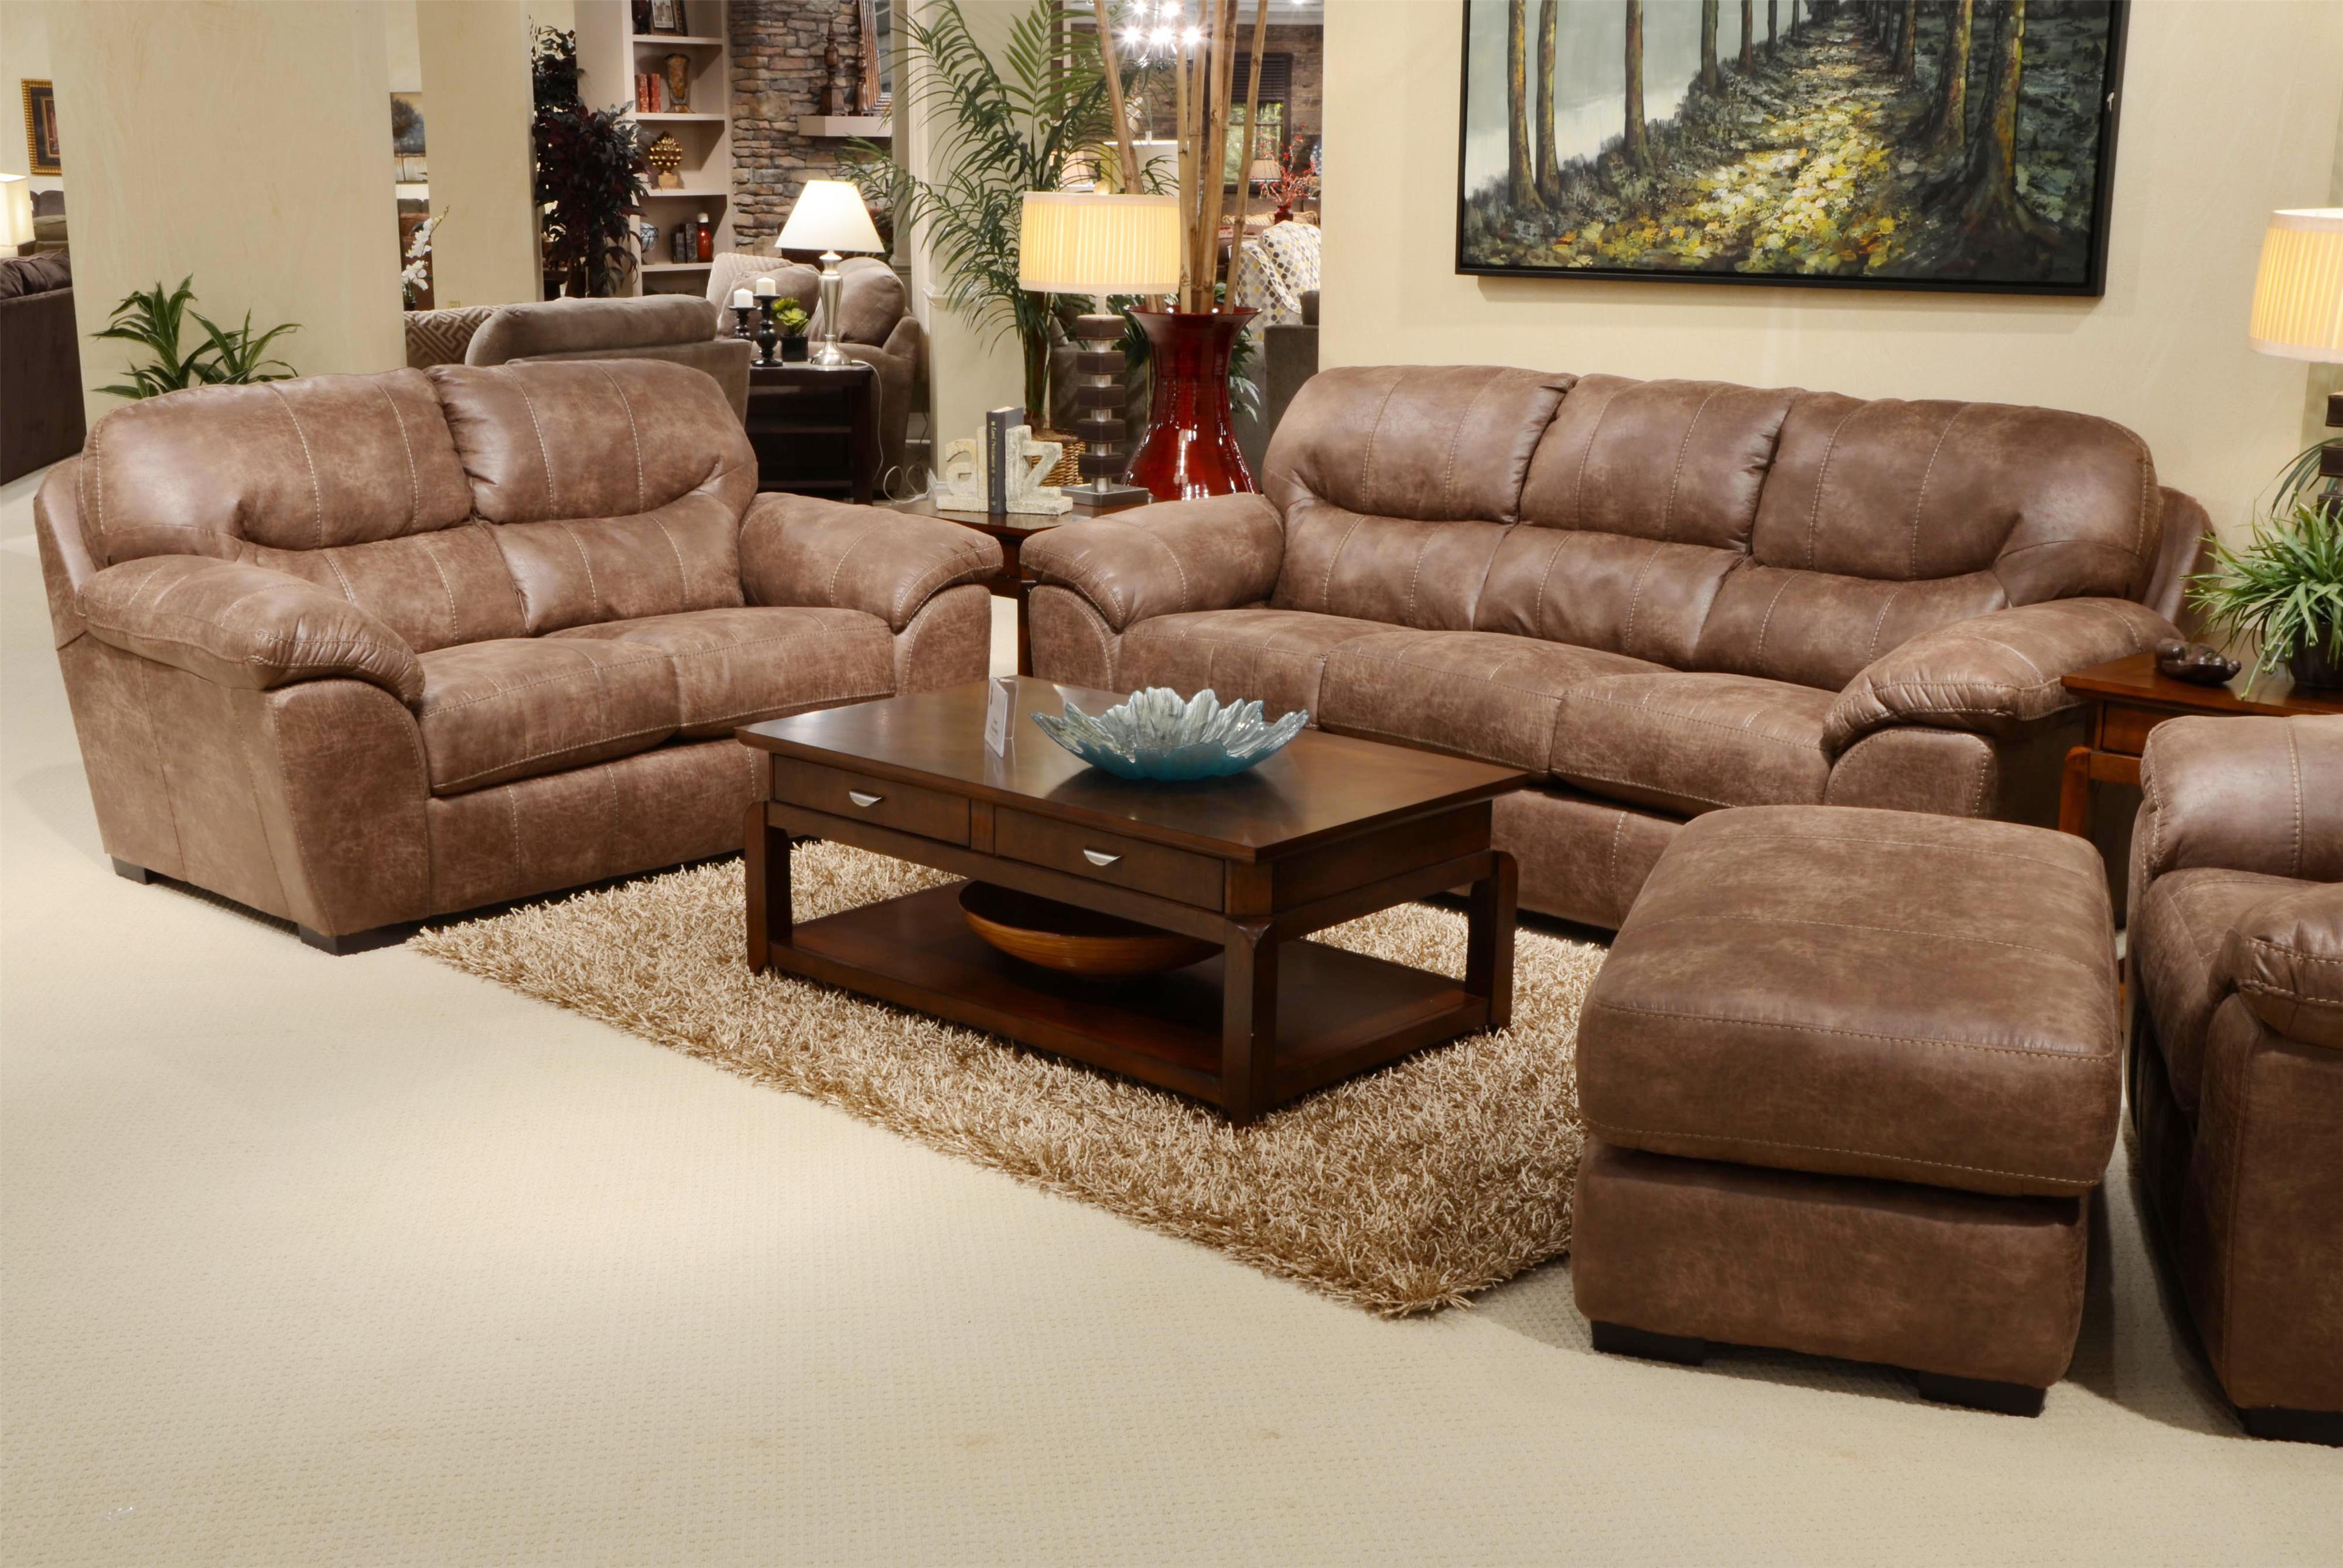 Faux Leather Sleeper Sofa For Living Rooms And Family